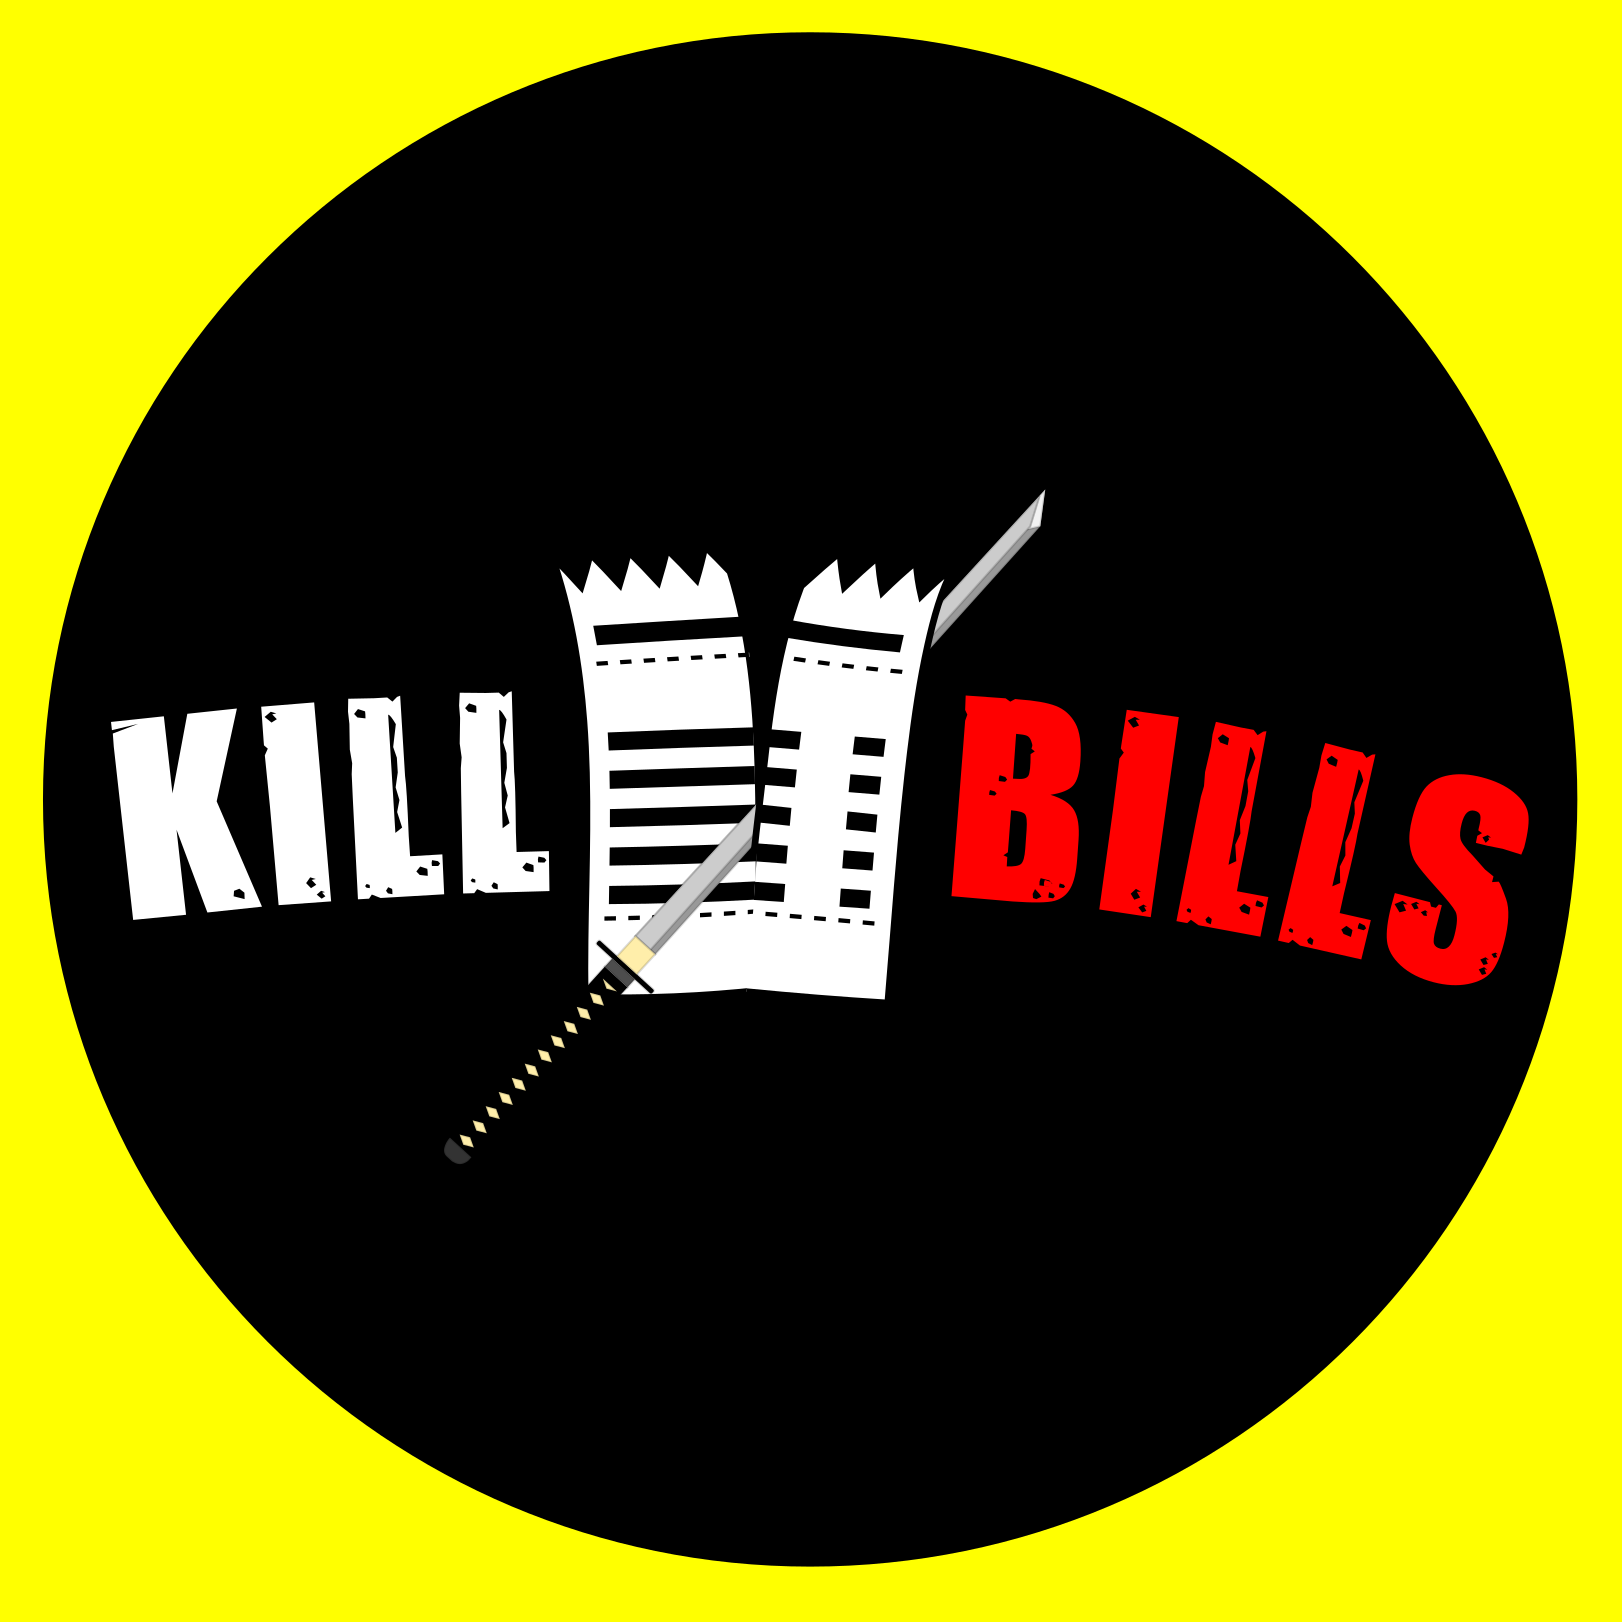 logo Kill Bills